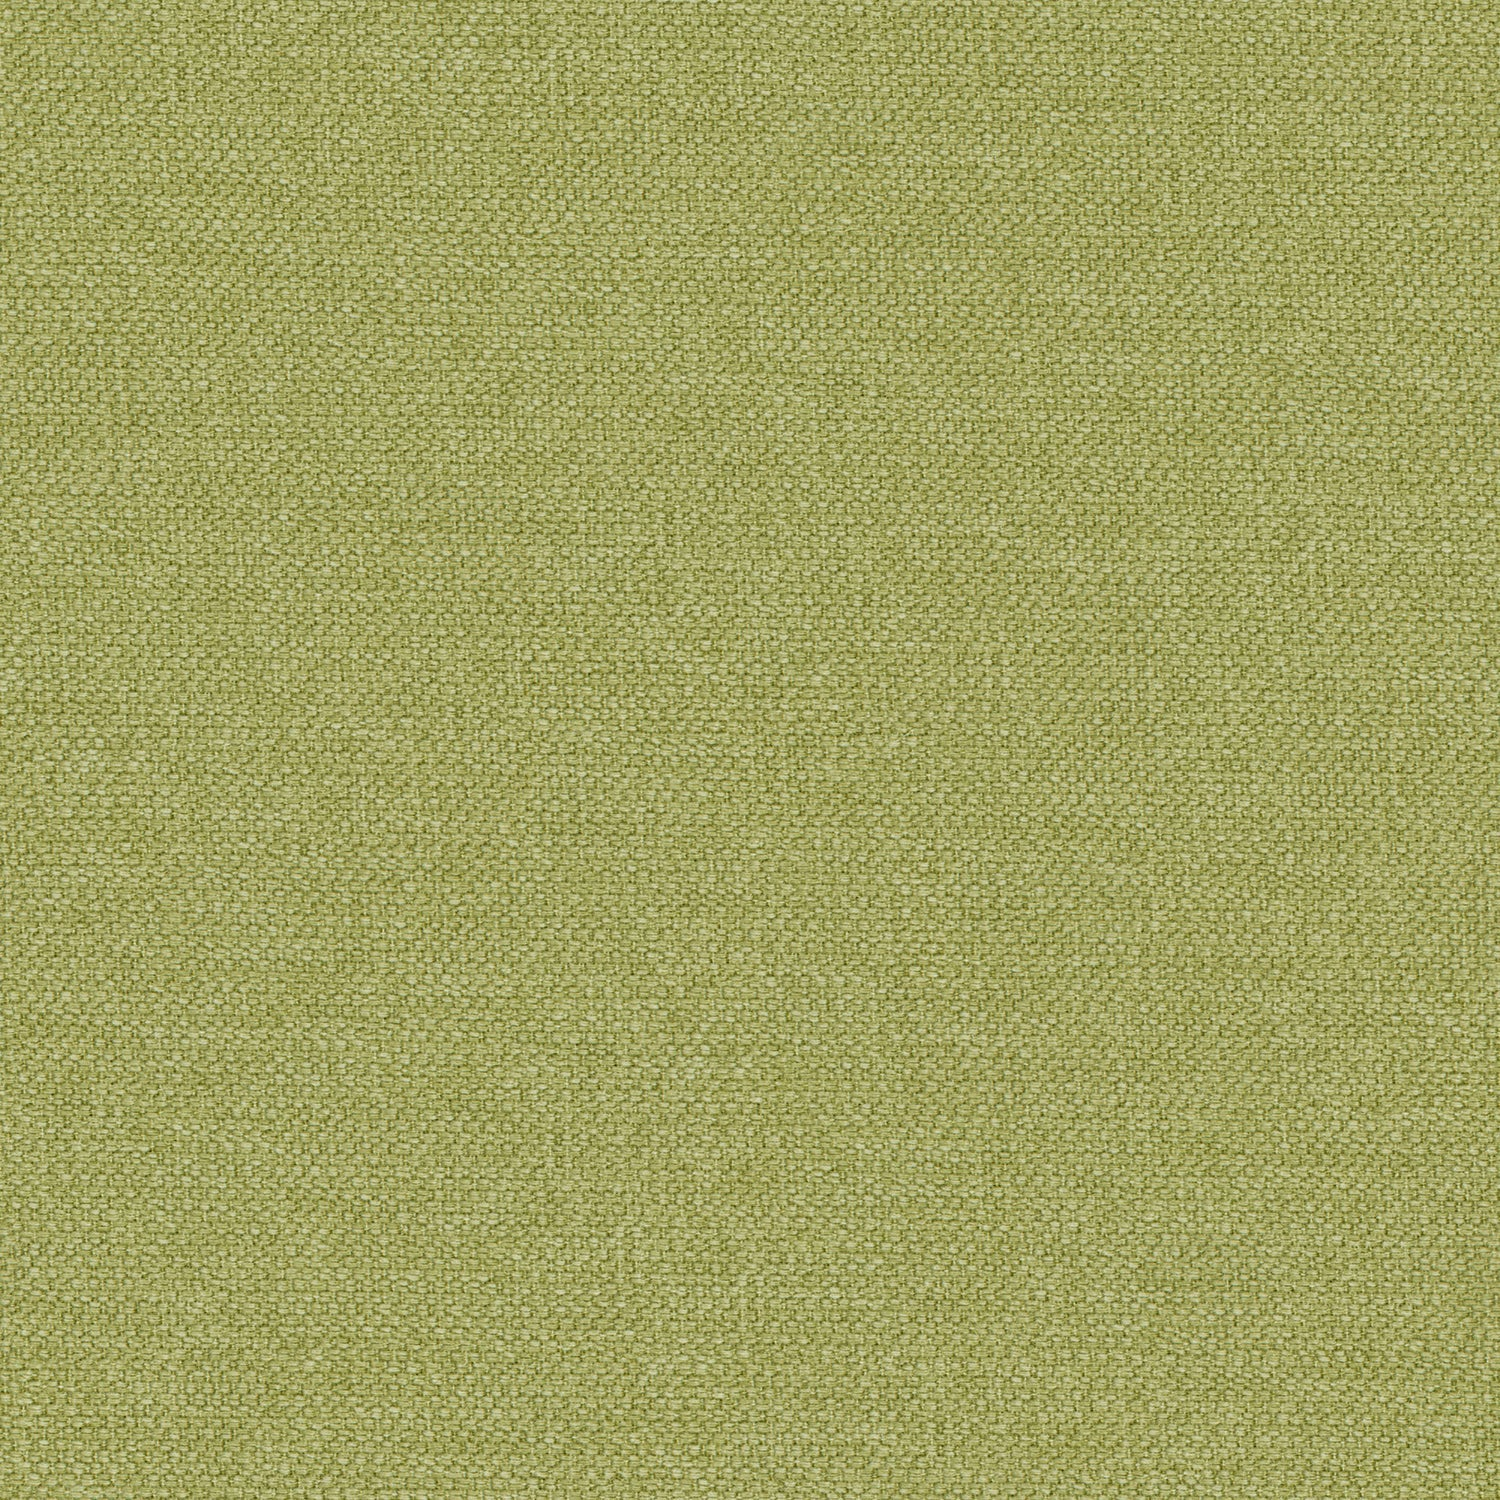 Plain lime green cotton fabric suitable for contact and domestic upholstery or curtains